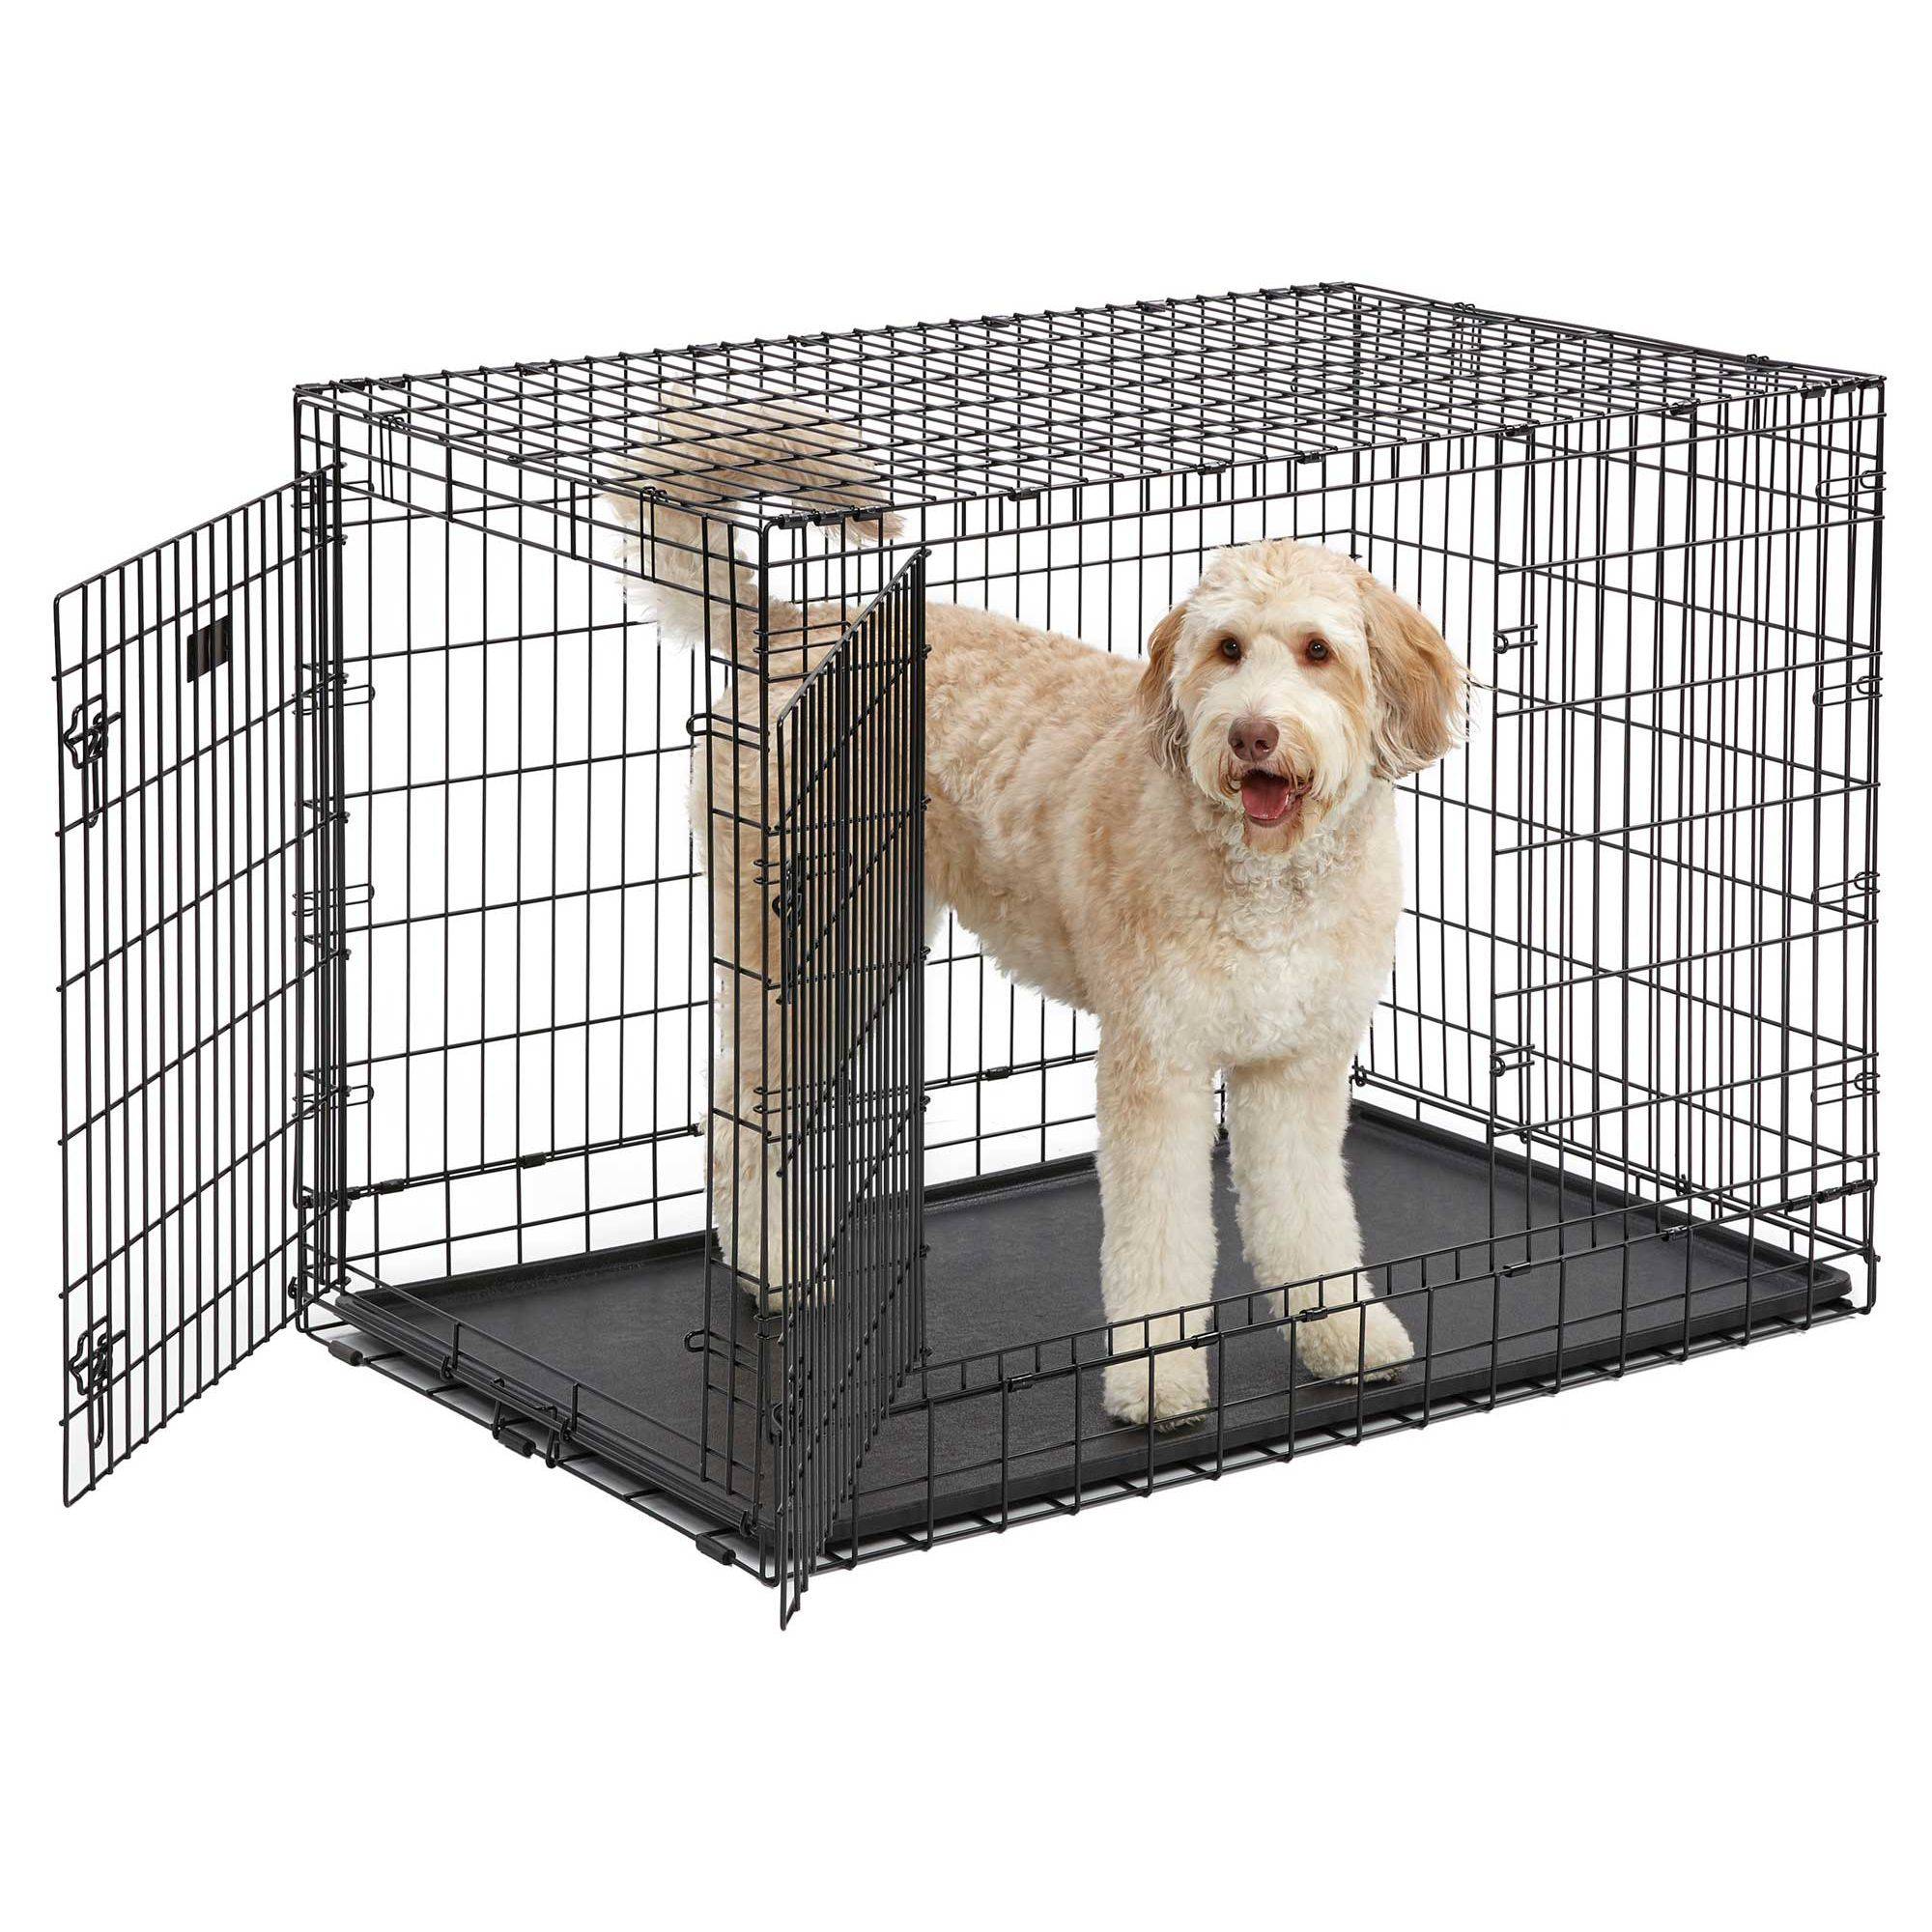 Midwest Ultima Pro Double Door Dog Crate Size 49 L X 3w X 35 H Black Large Dog Crate Dog Crate Midwest Dog Crates